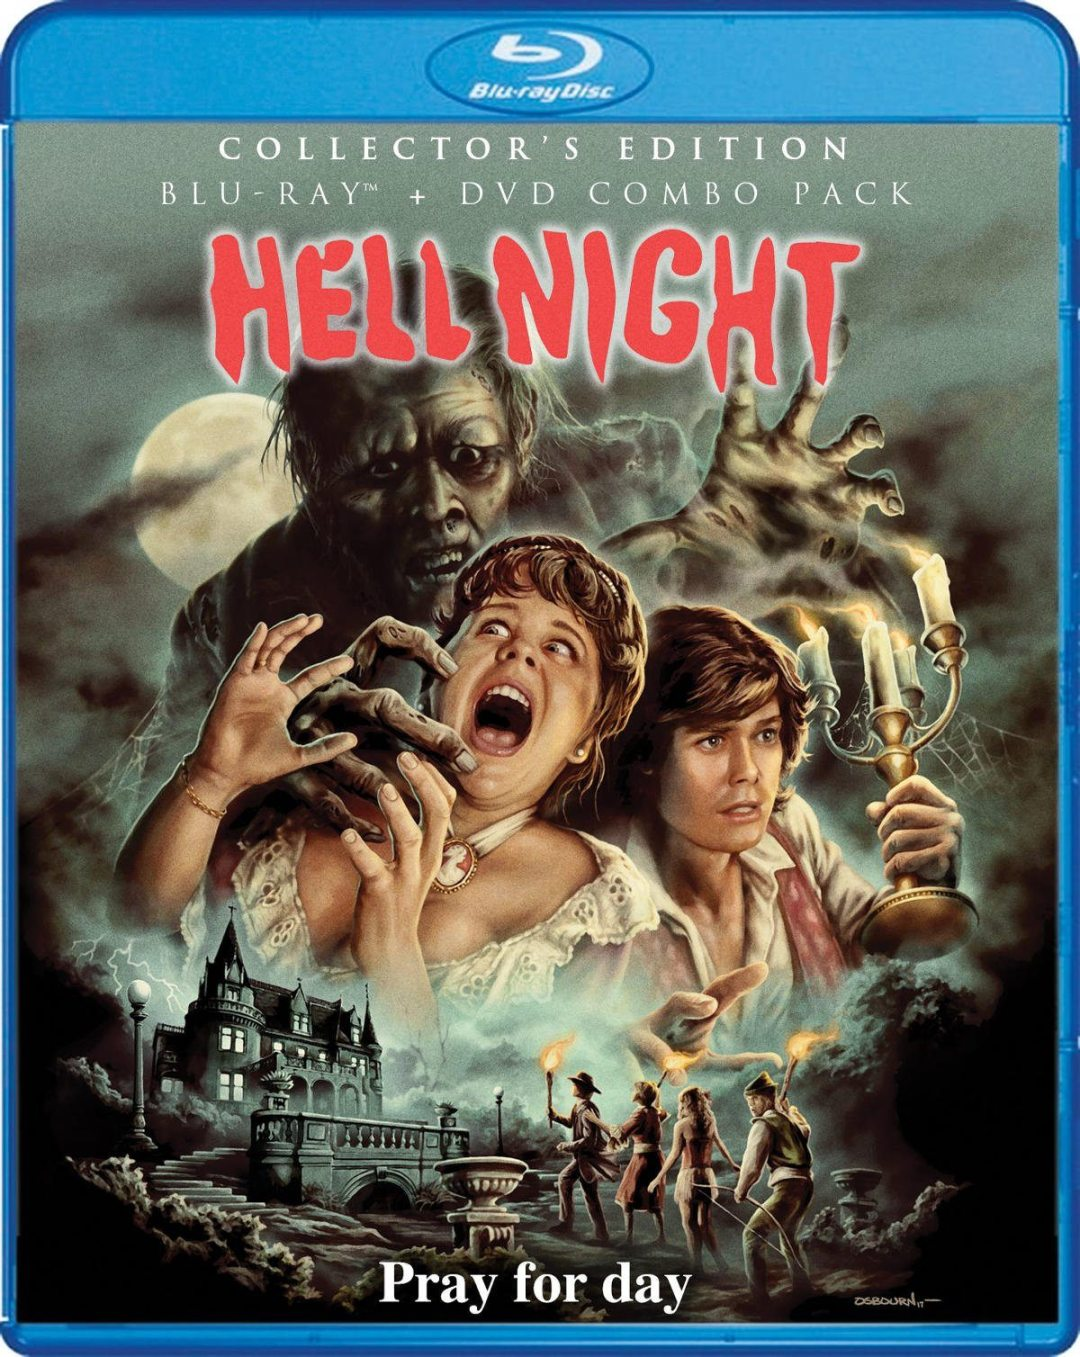 'Hell Night' is Getting a Collector's Edition!